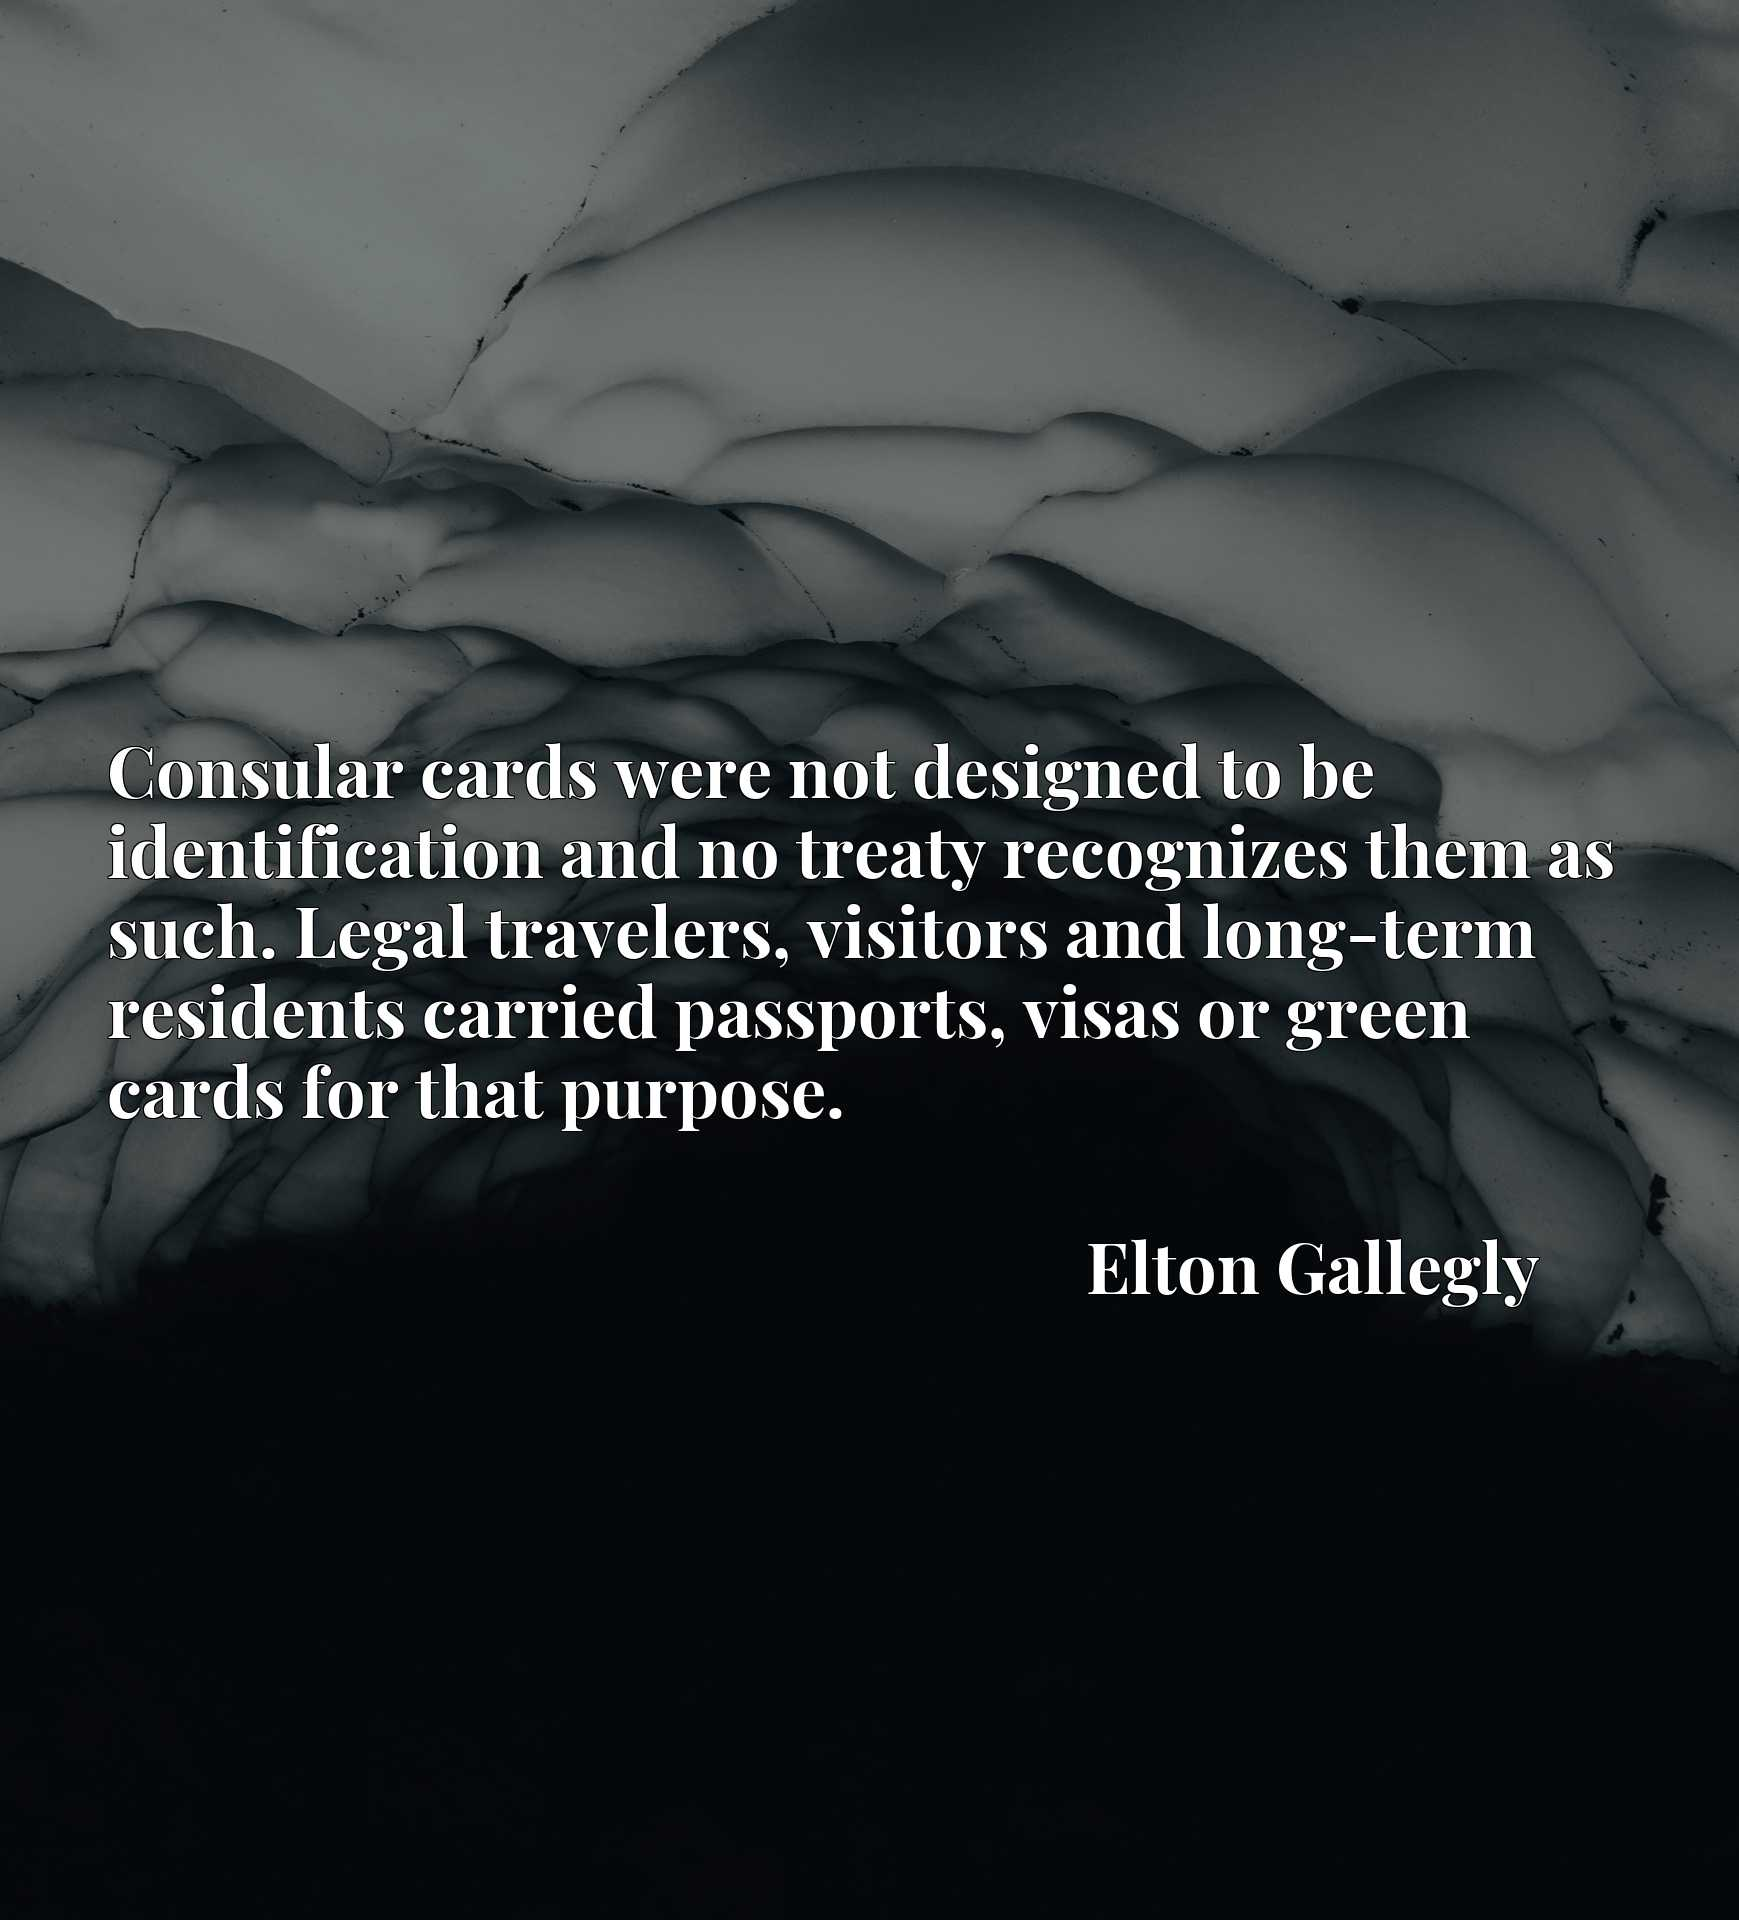 Quote Picture :Consular cards were not designed to be identification and no treaty recognizes them as such. Legal travelers, visitors and long-term residents carried passports, visas or green cards for that purpose.